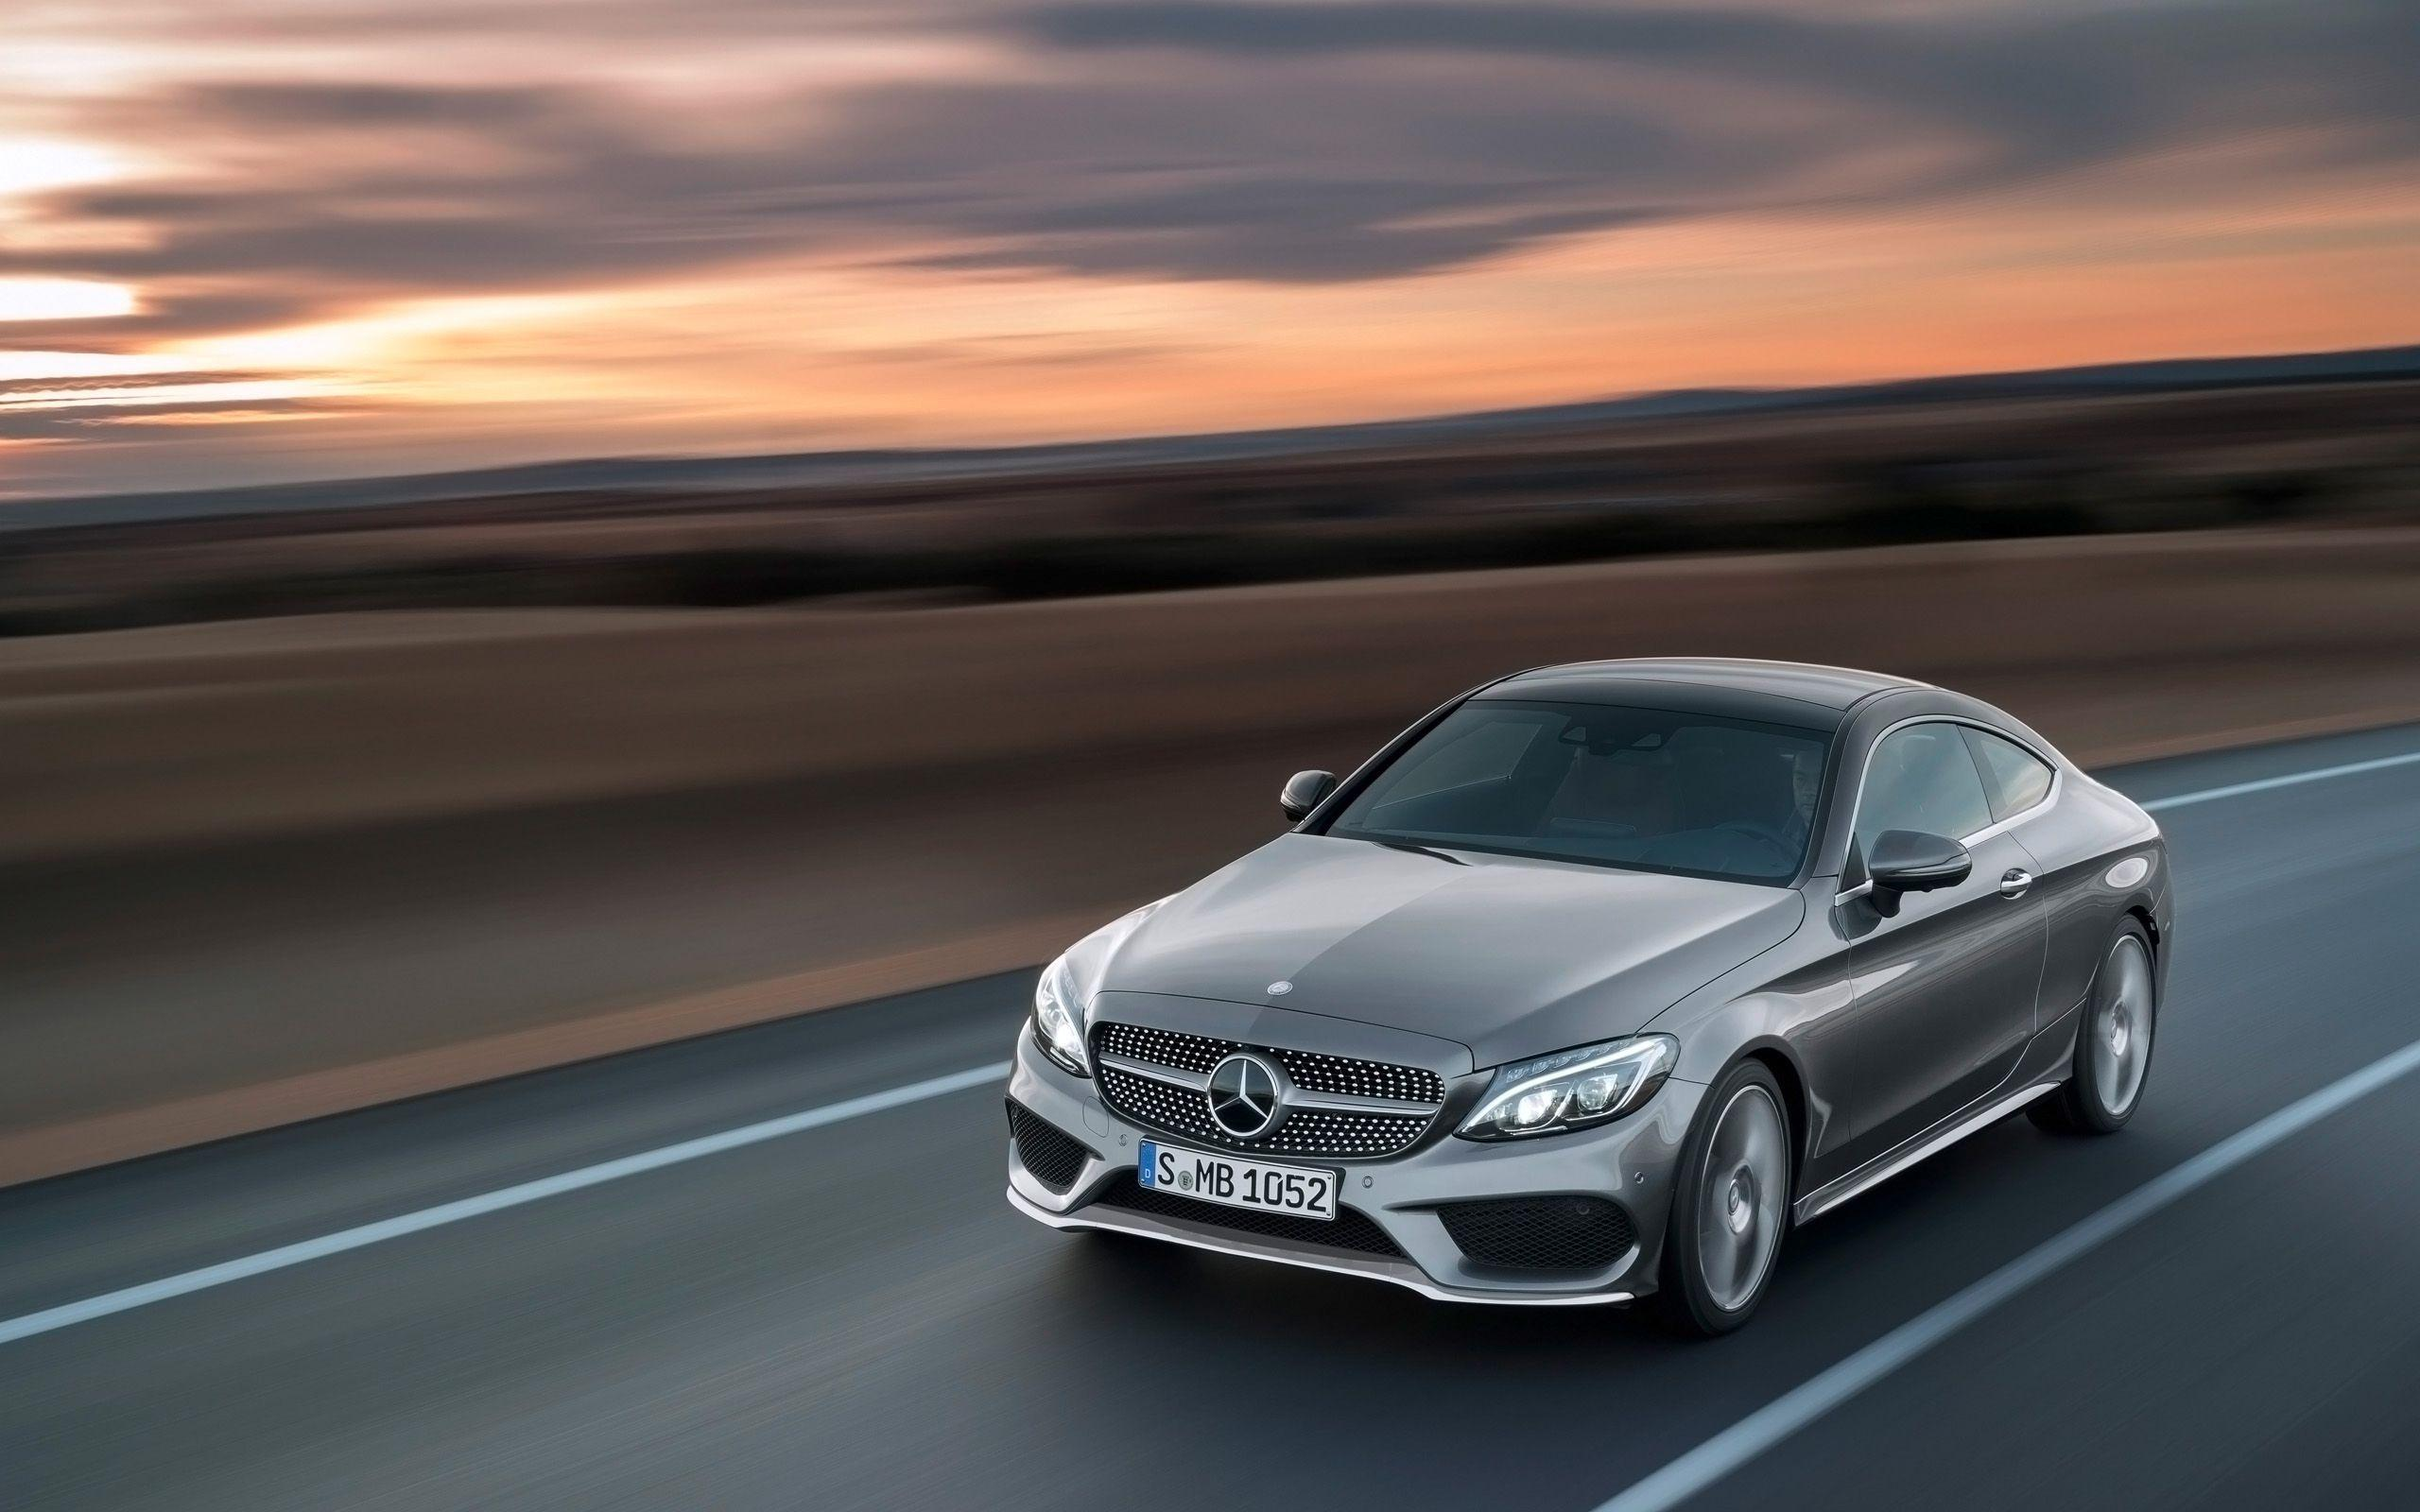 mercedes c-class wallpapers - wallpaper cave